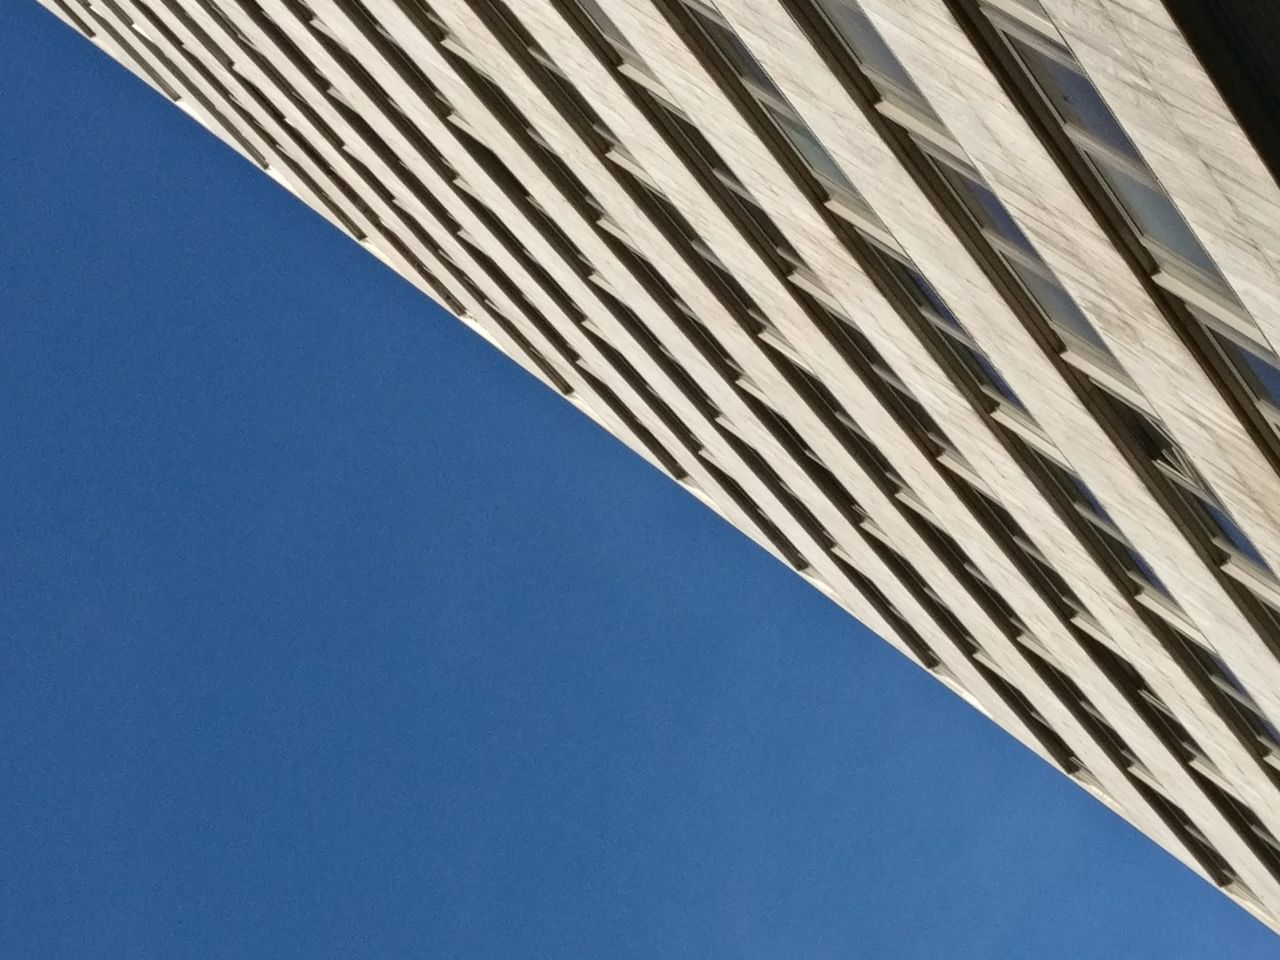 low angle view, architecture, blue, building exterior, built structure, pattern, clear sky, day, outdoors, no people, modern, close-up, sky